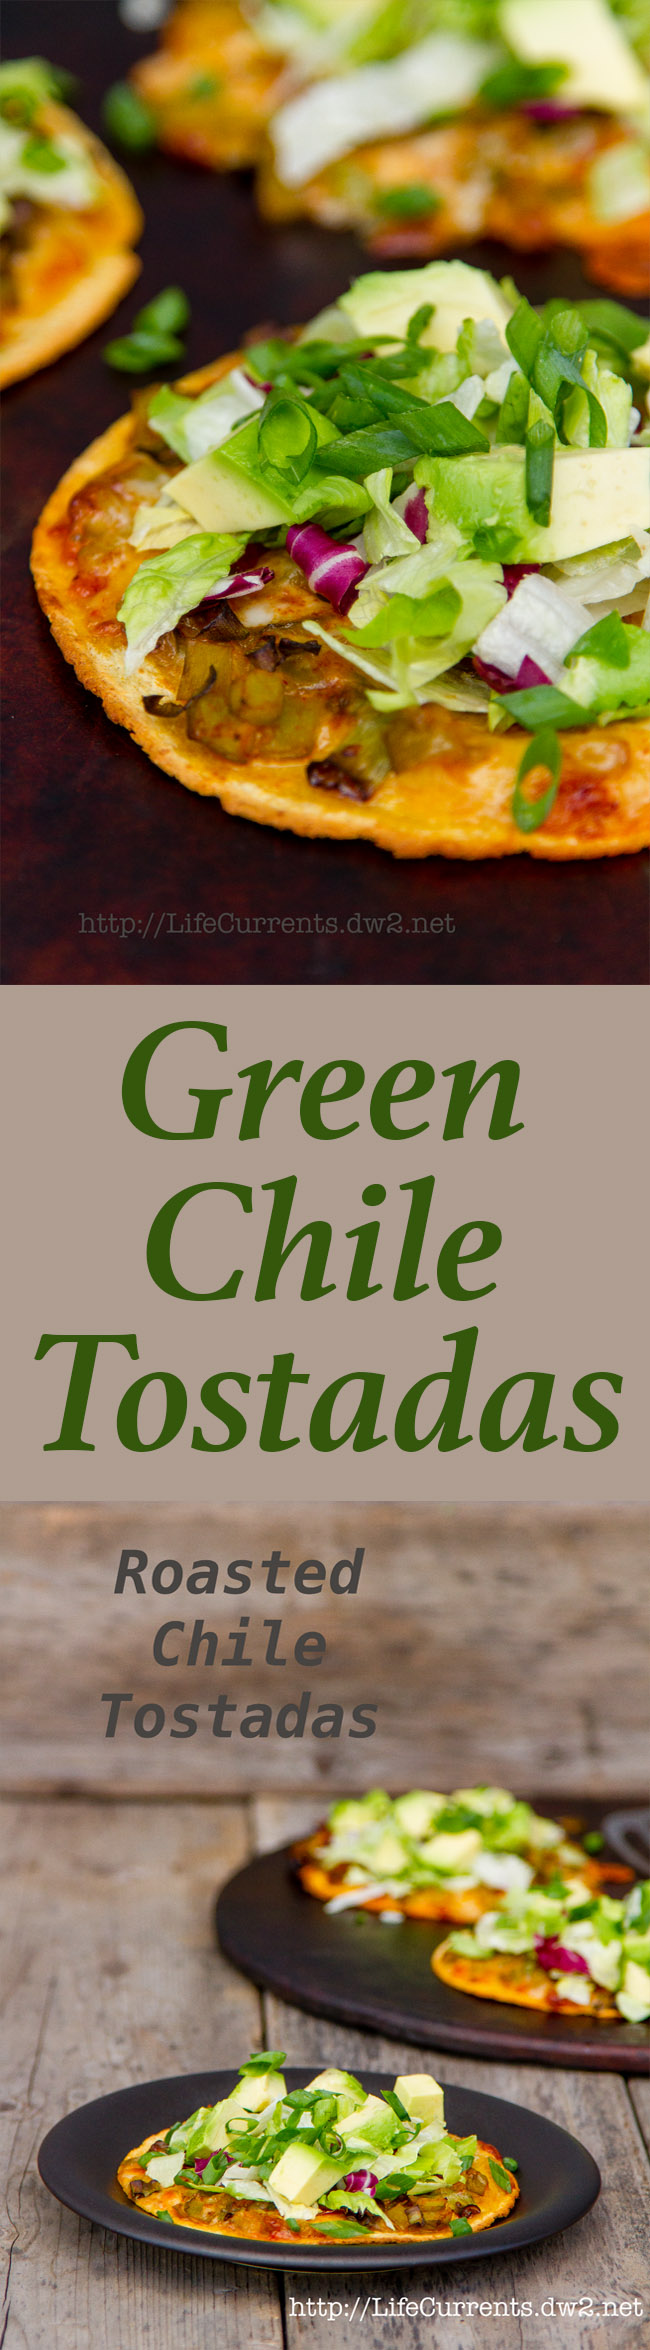 Roasted Chile Tostadas